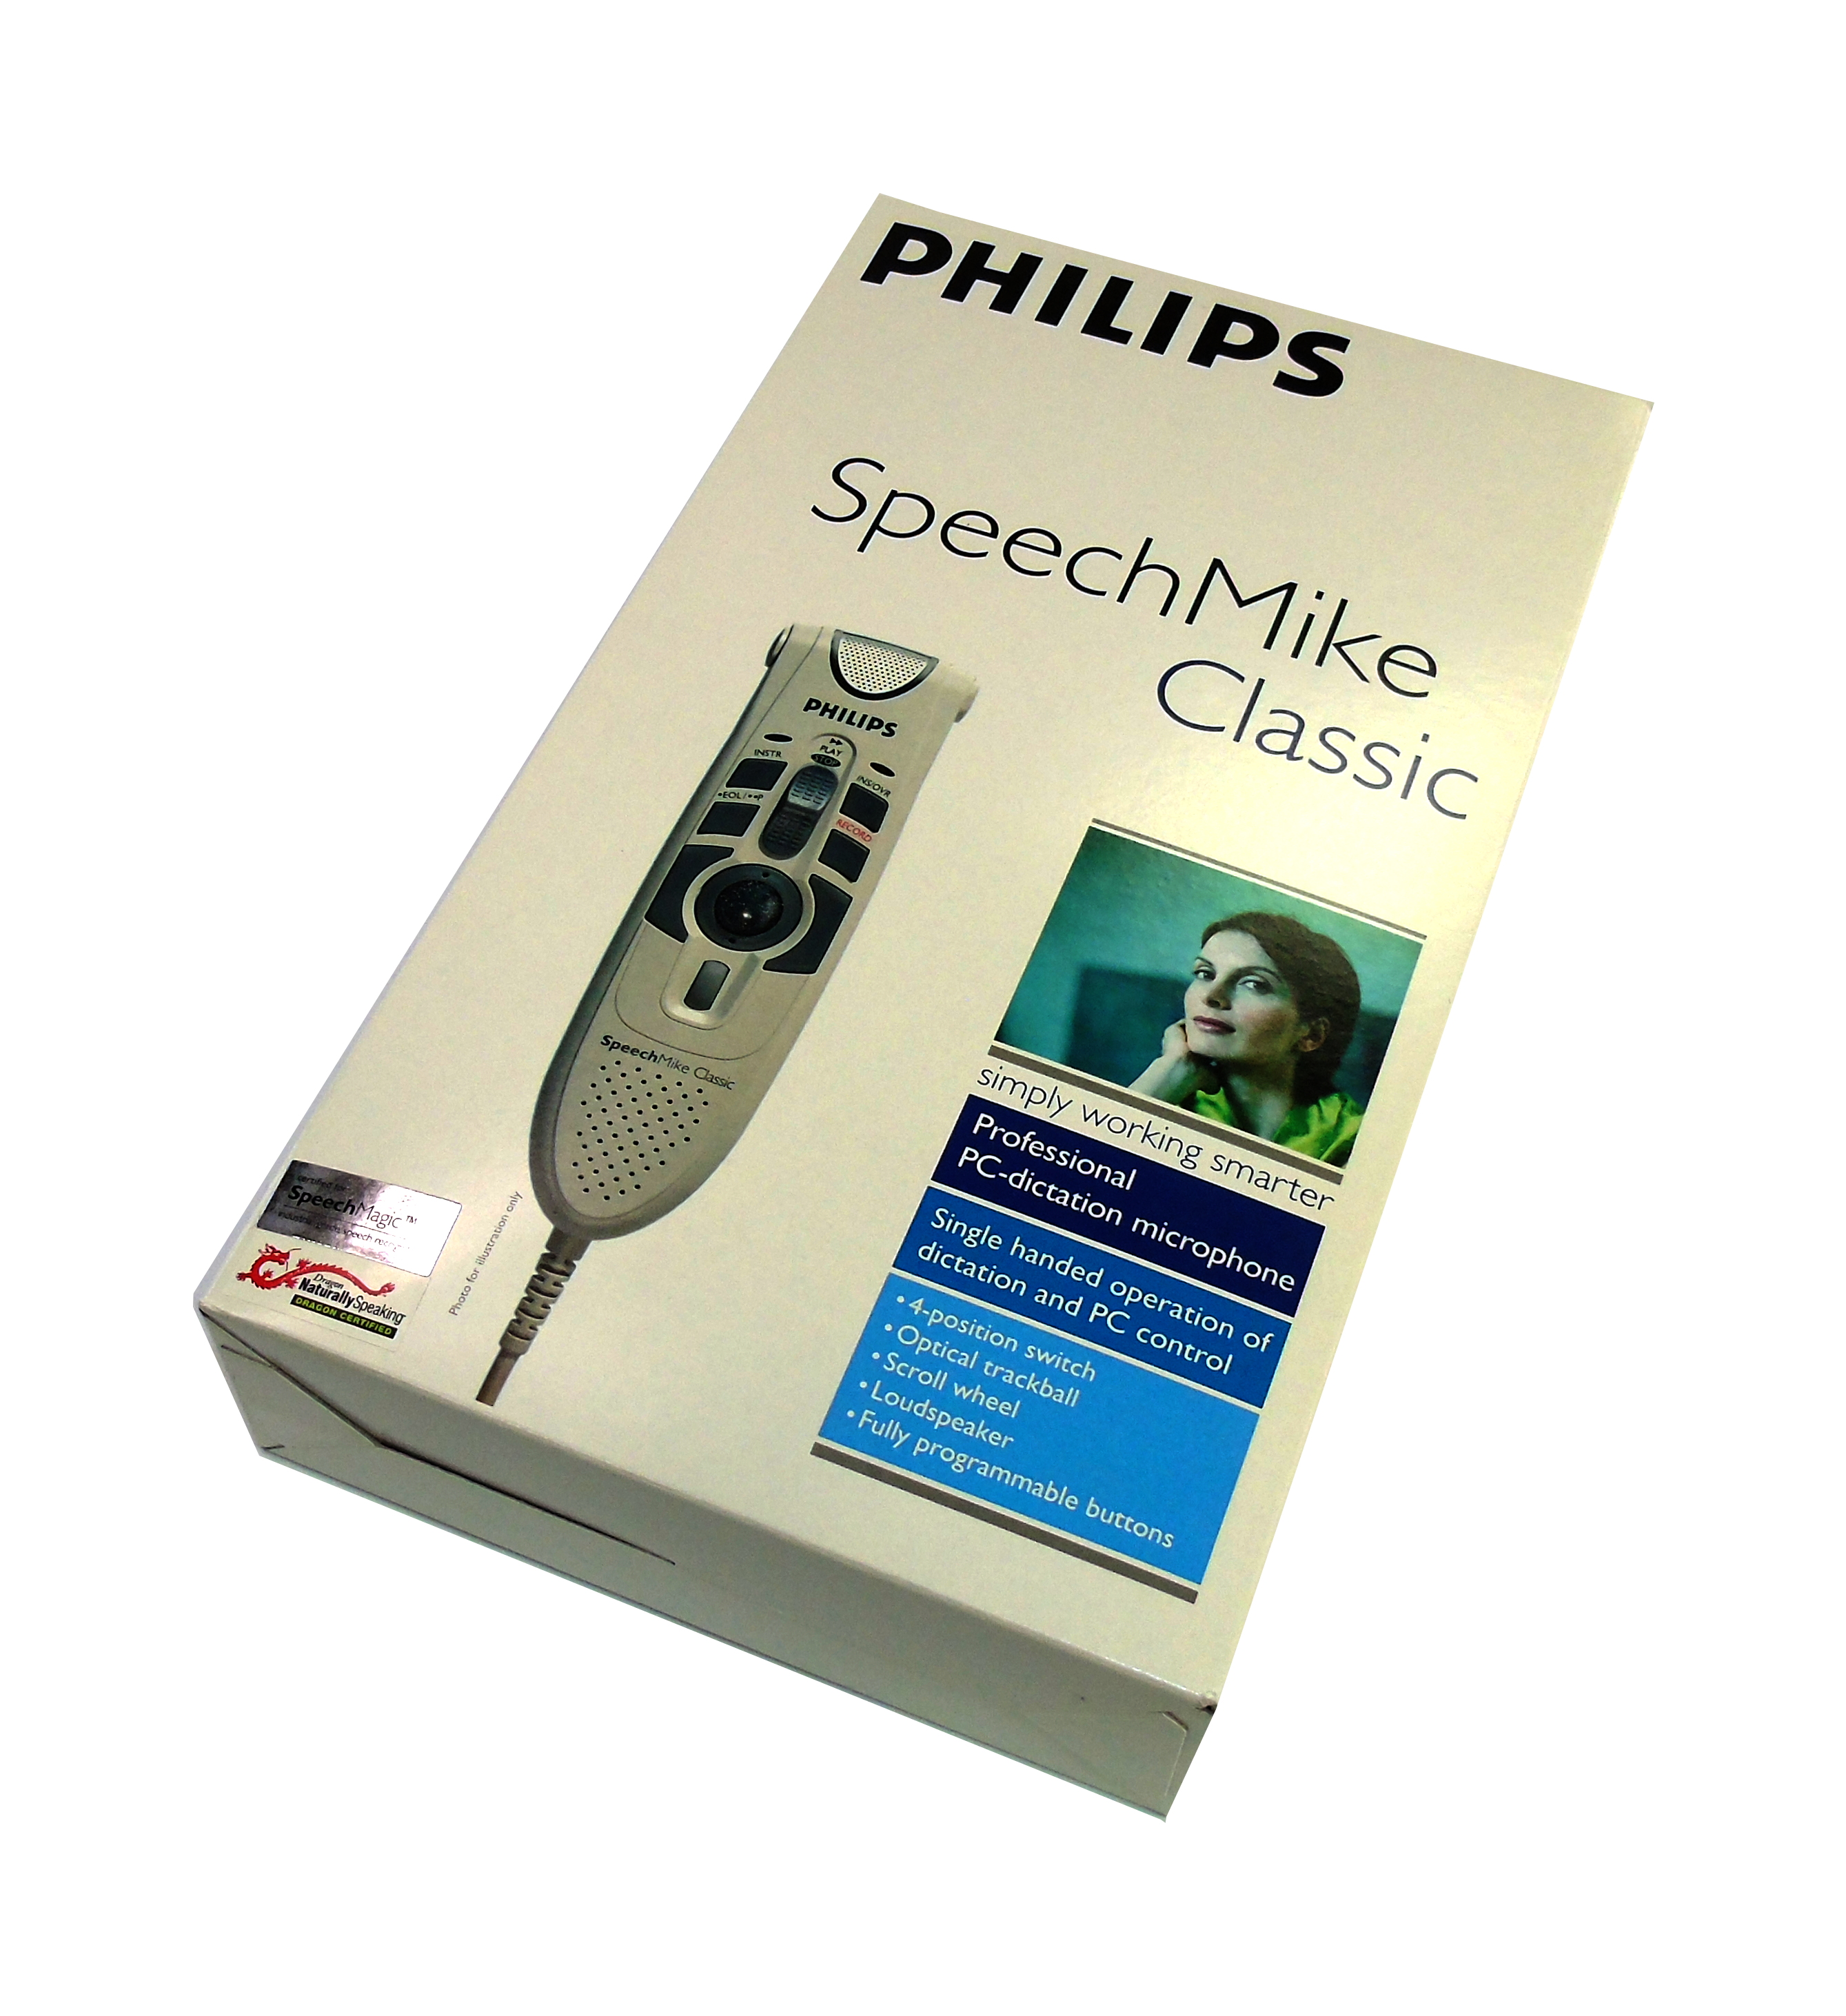 *New* Philips LFH5260/00 V2.3 SpeechMike Classic 5260 PC-dictation Microphone